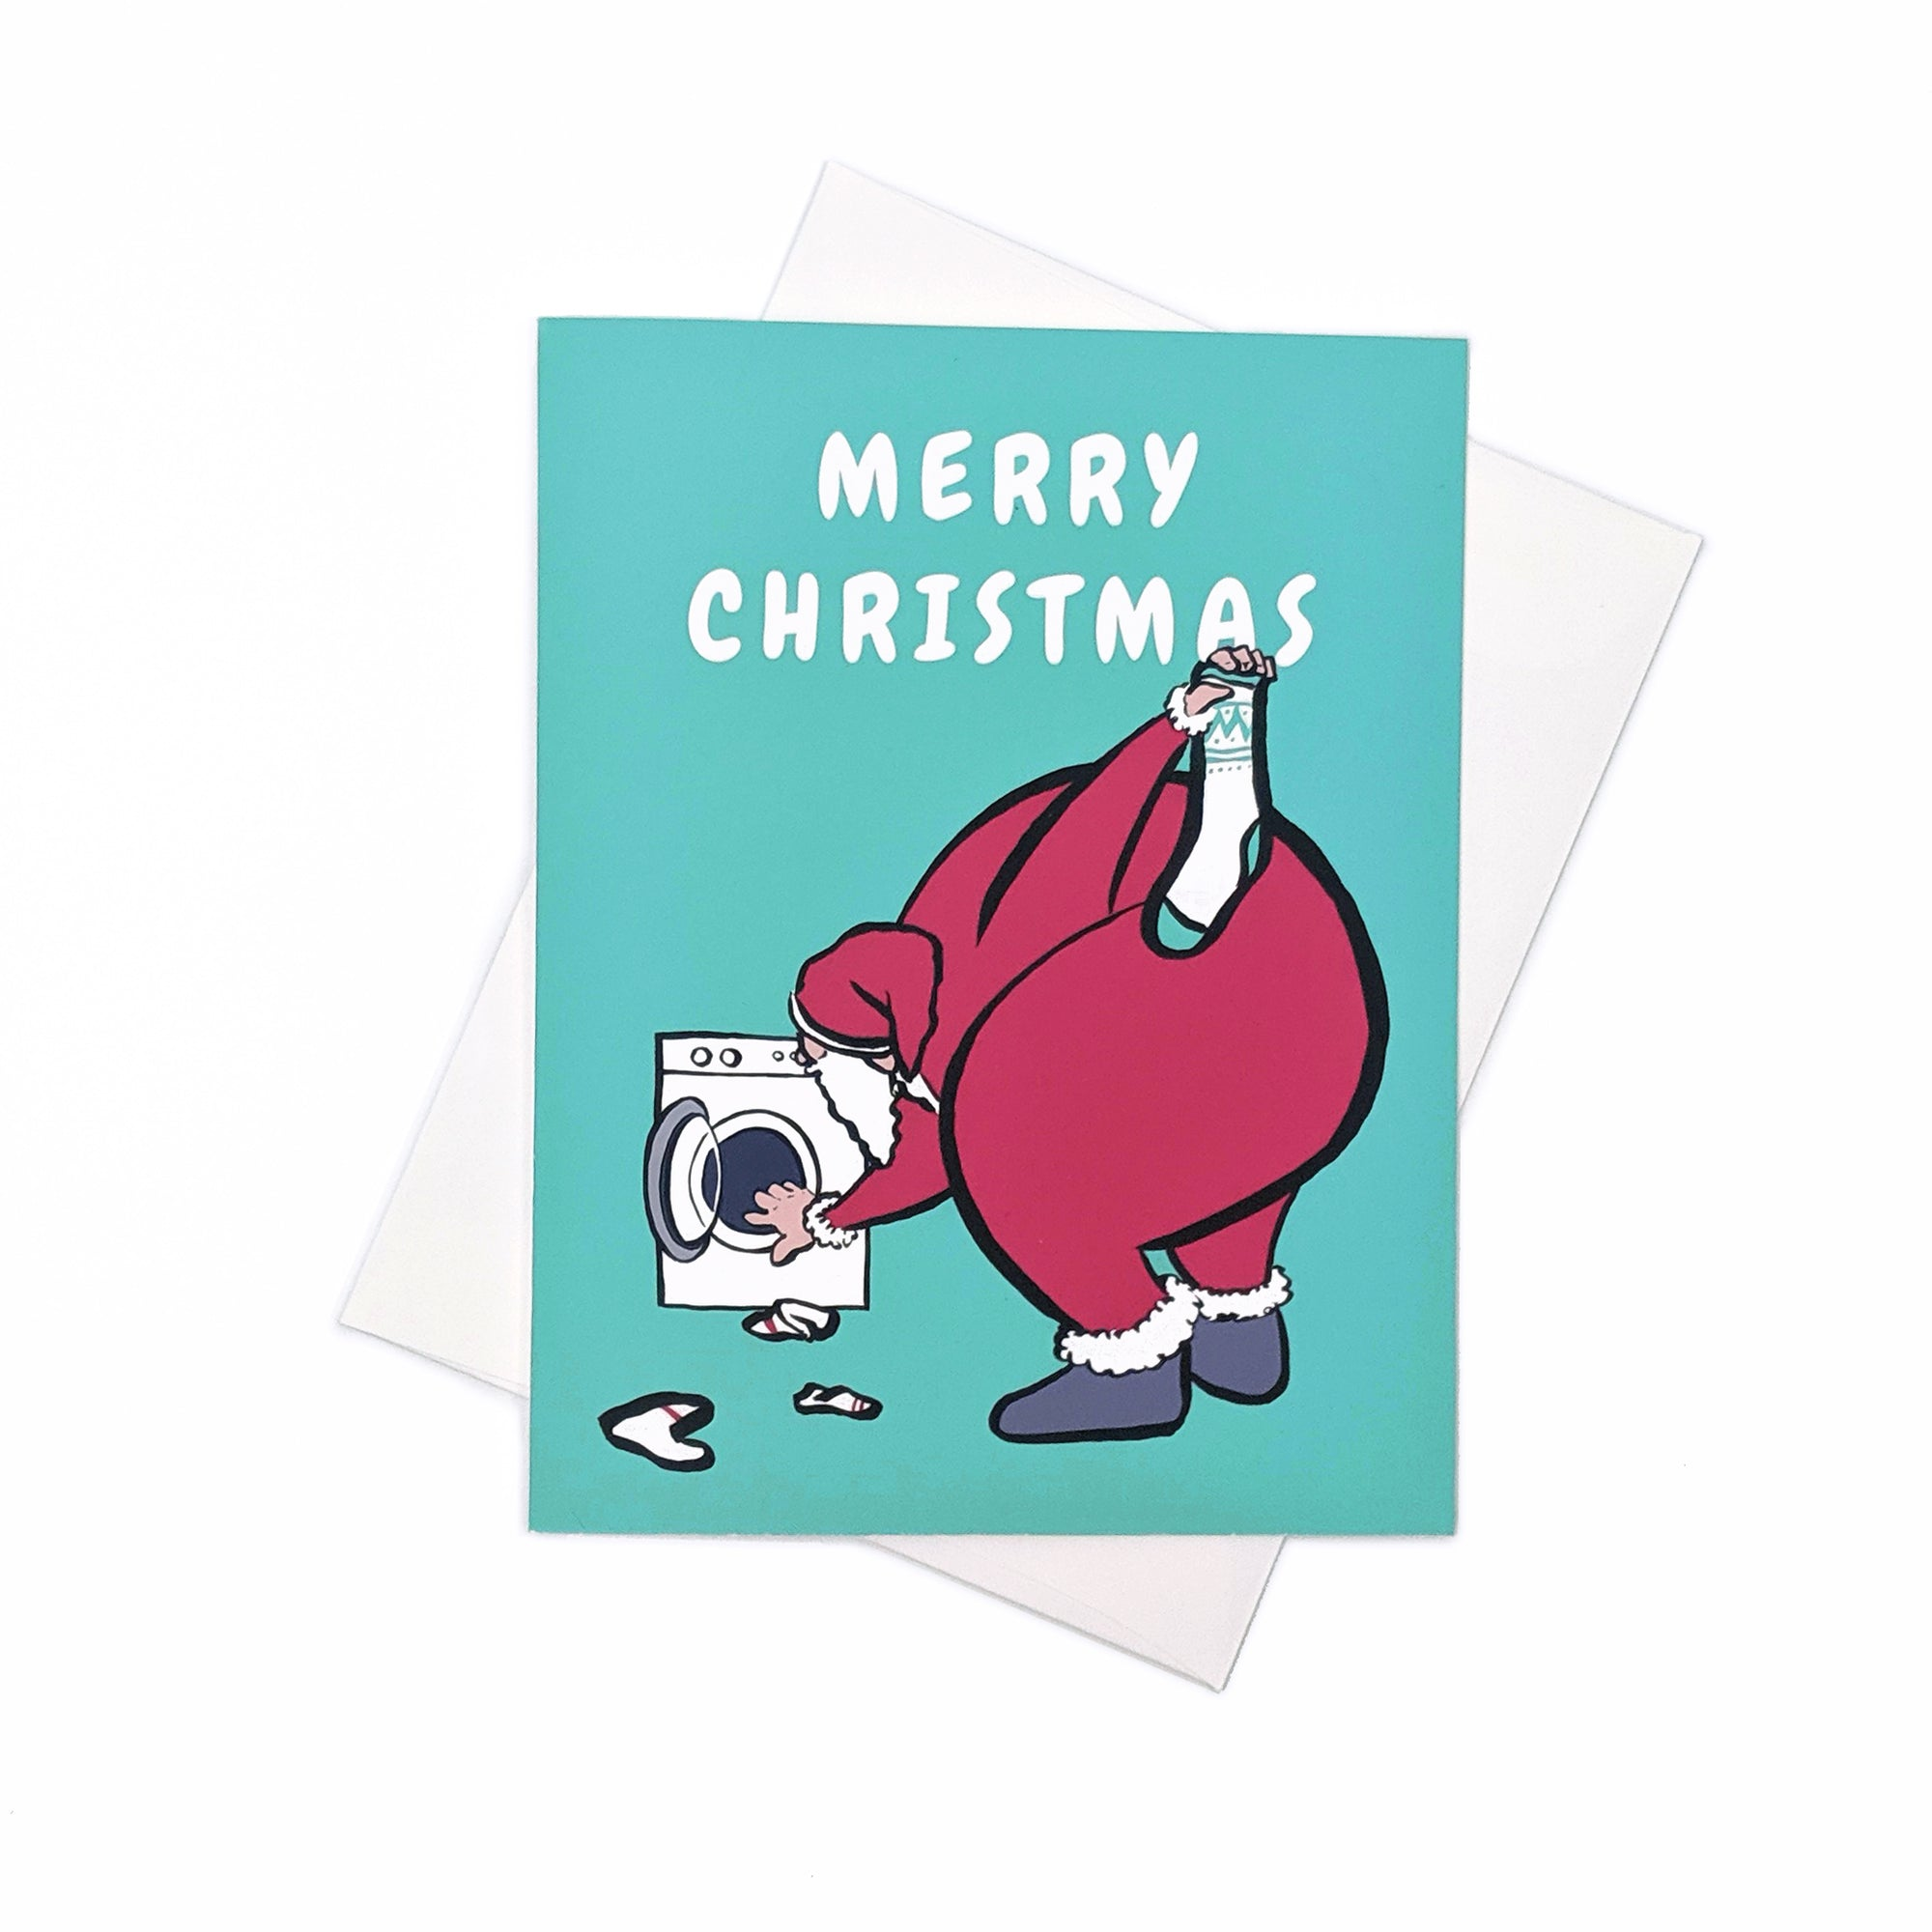 Santa Laundry Socks - Christmas Card